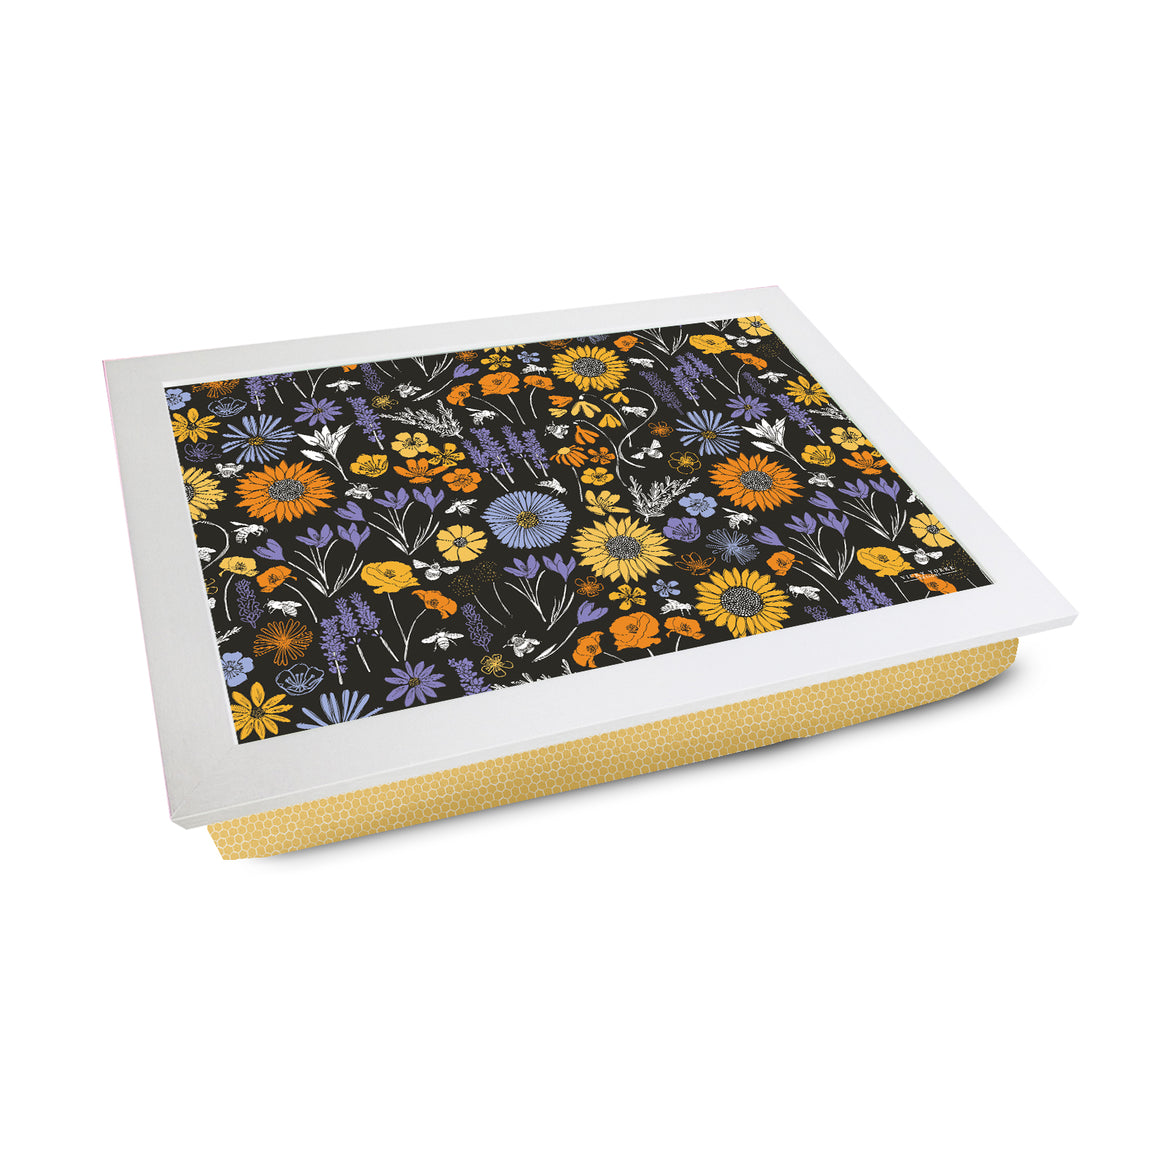 Bee and Sun Flower Lap Tray by Vicky Yorke Designs